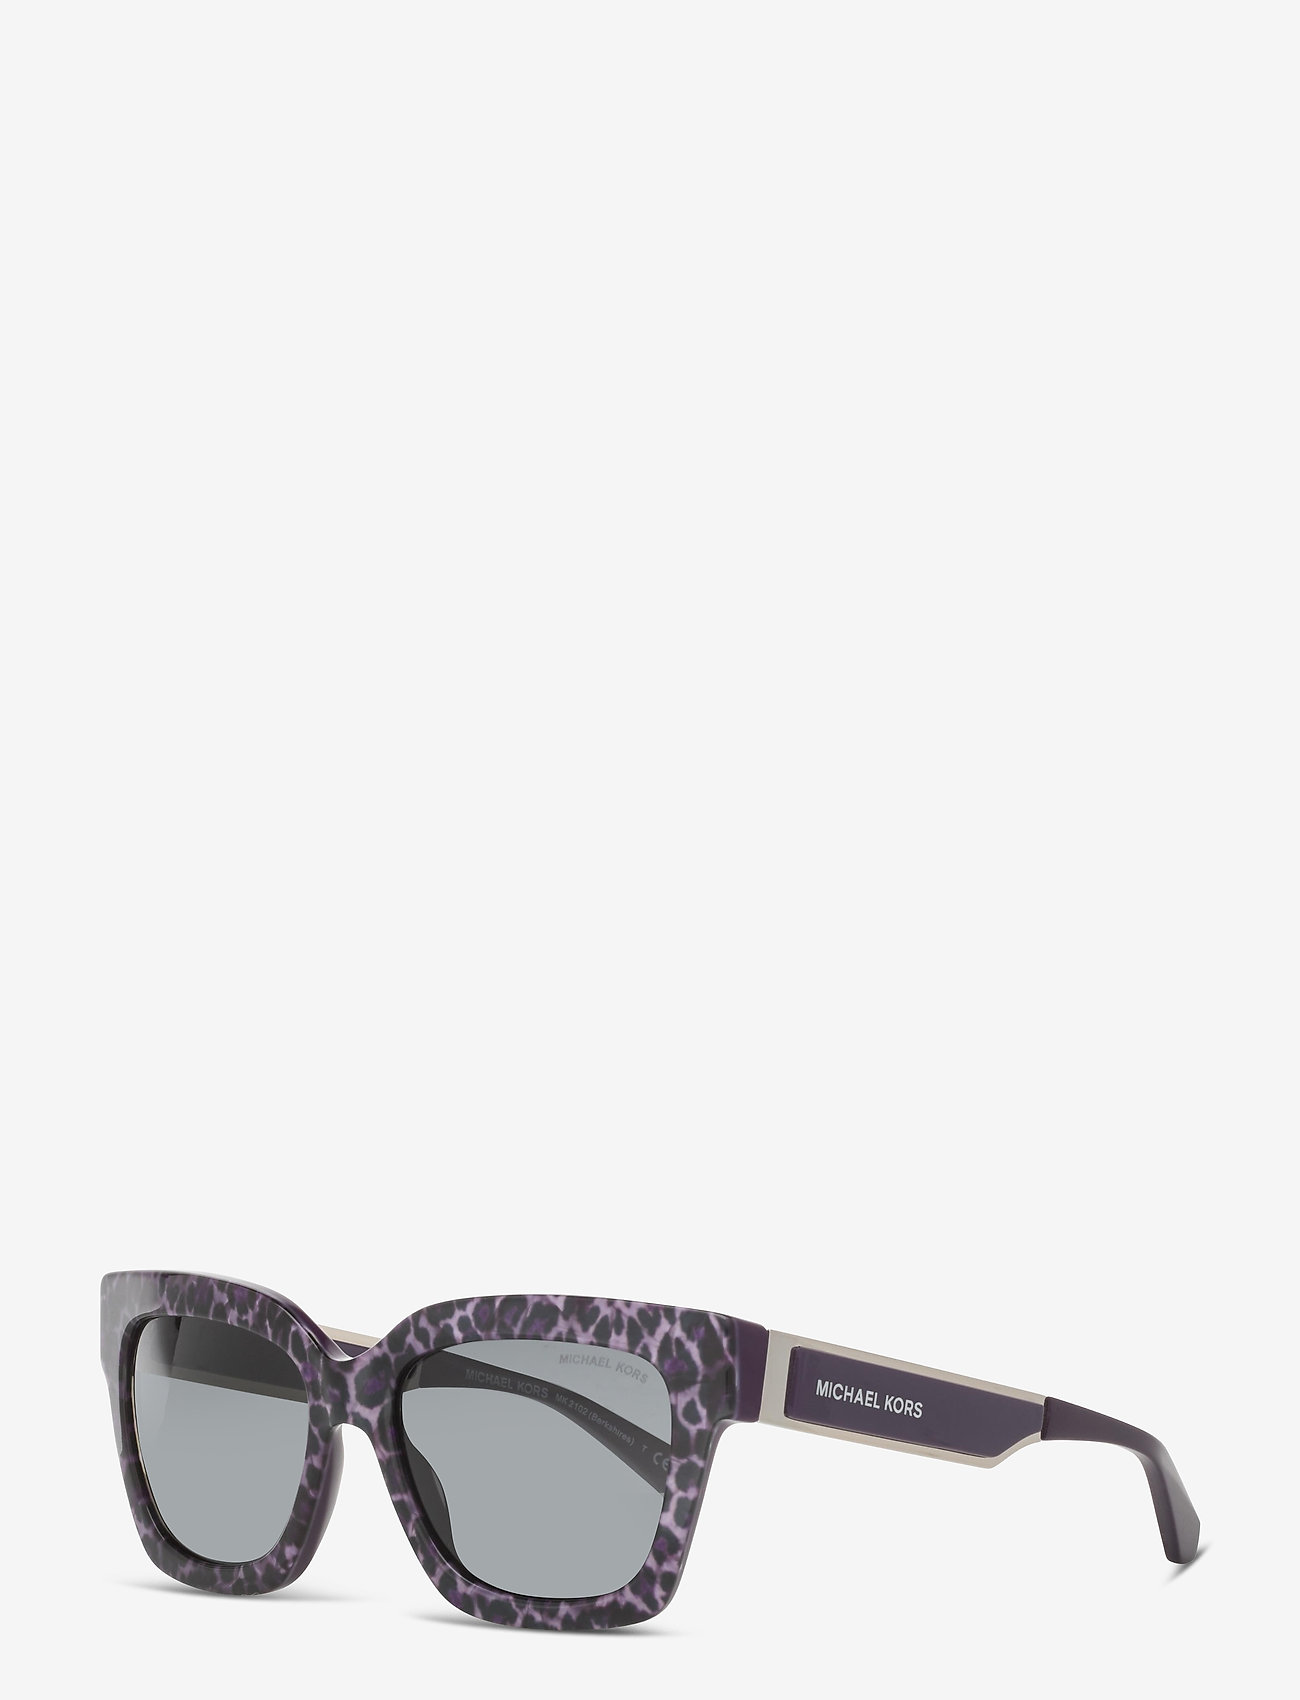 Michael Kors Sunglasses - Michael Kors Sunglasses - wayfarer - dark grey solid - 1